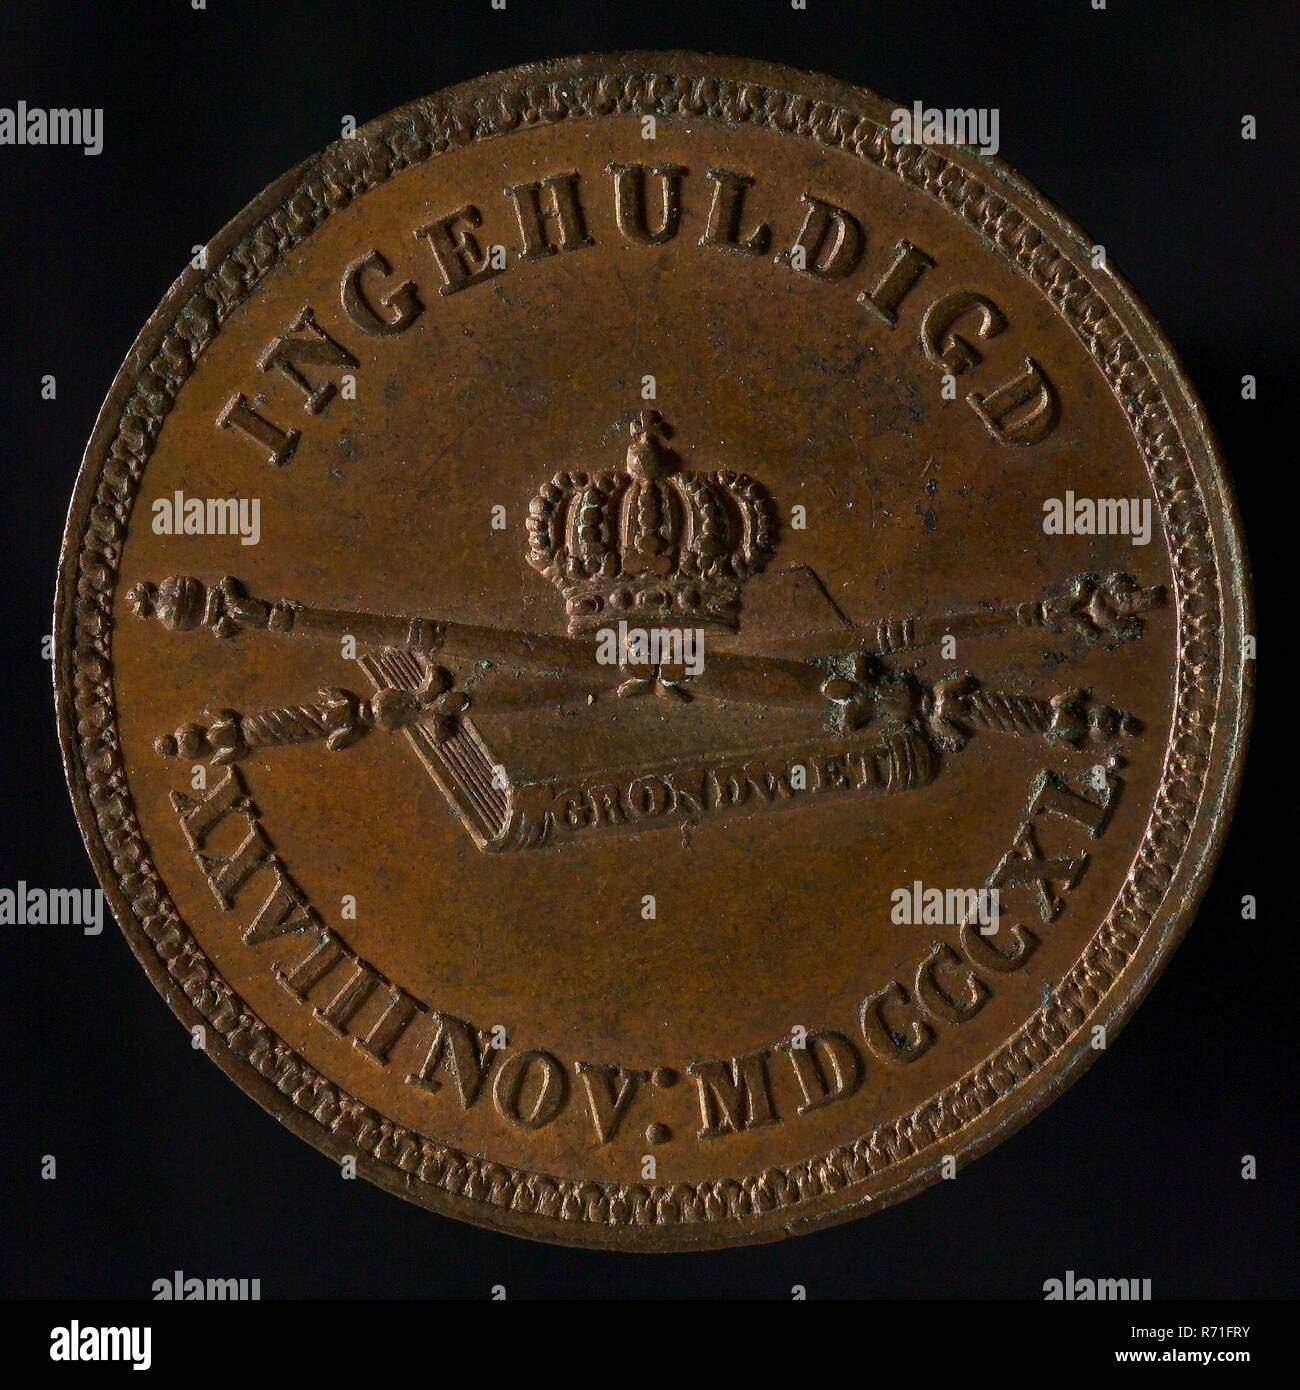 Medal at the inauguration of King Willem II in Amsterdam, medallions bronze bronze, text only, WILLEM II KING OF THE NETHERLANDS (in the field) royal house Oranjehuis Oranje Stock Photo